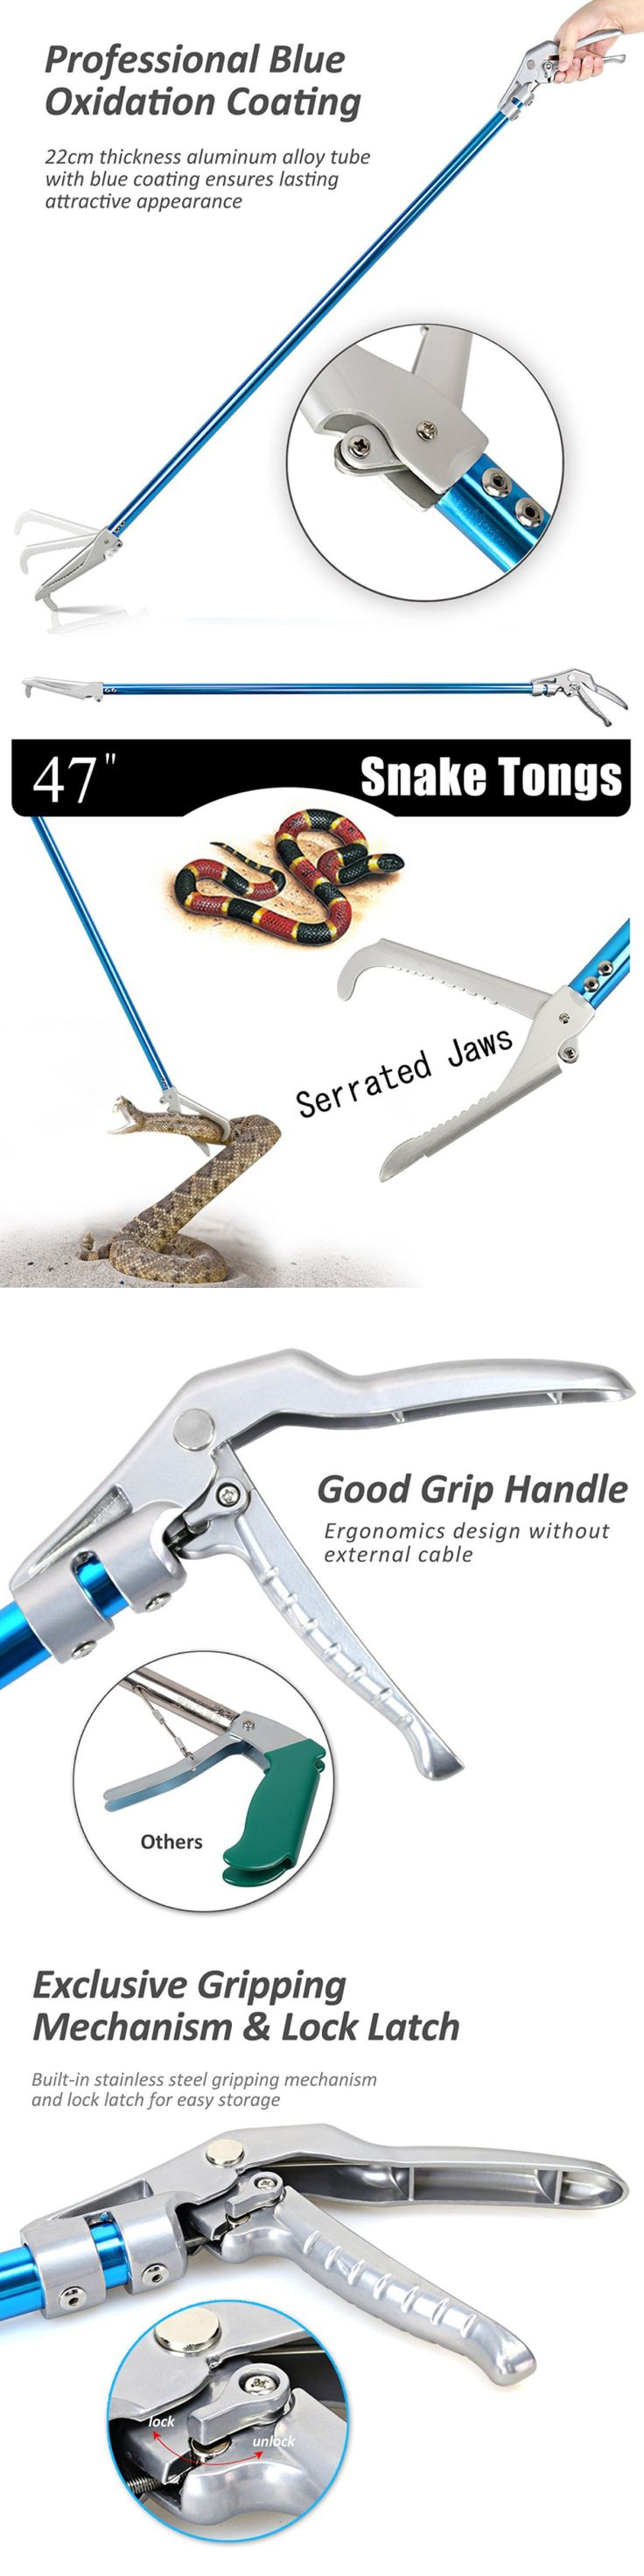 Reptile Supplies 1285: Fnova 47 Inch Professional Standard Snake Tong Reptile Grabber Rattle Catcher -> BUY IT NOW ONLY: $43.8 on eBay!